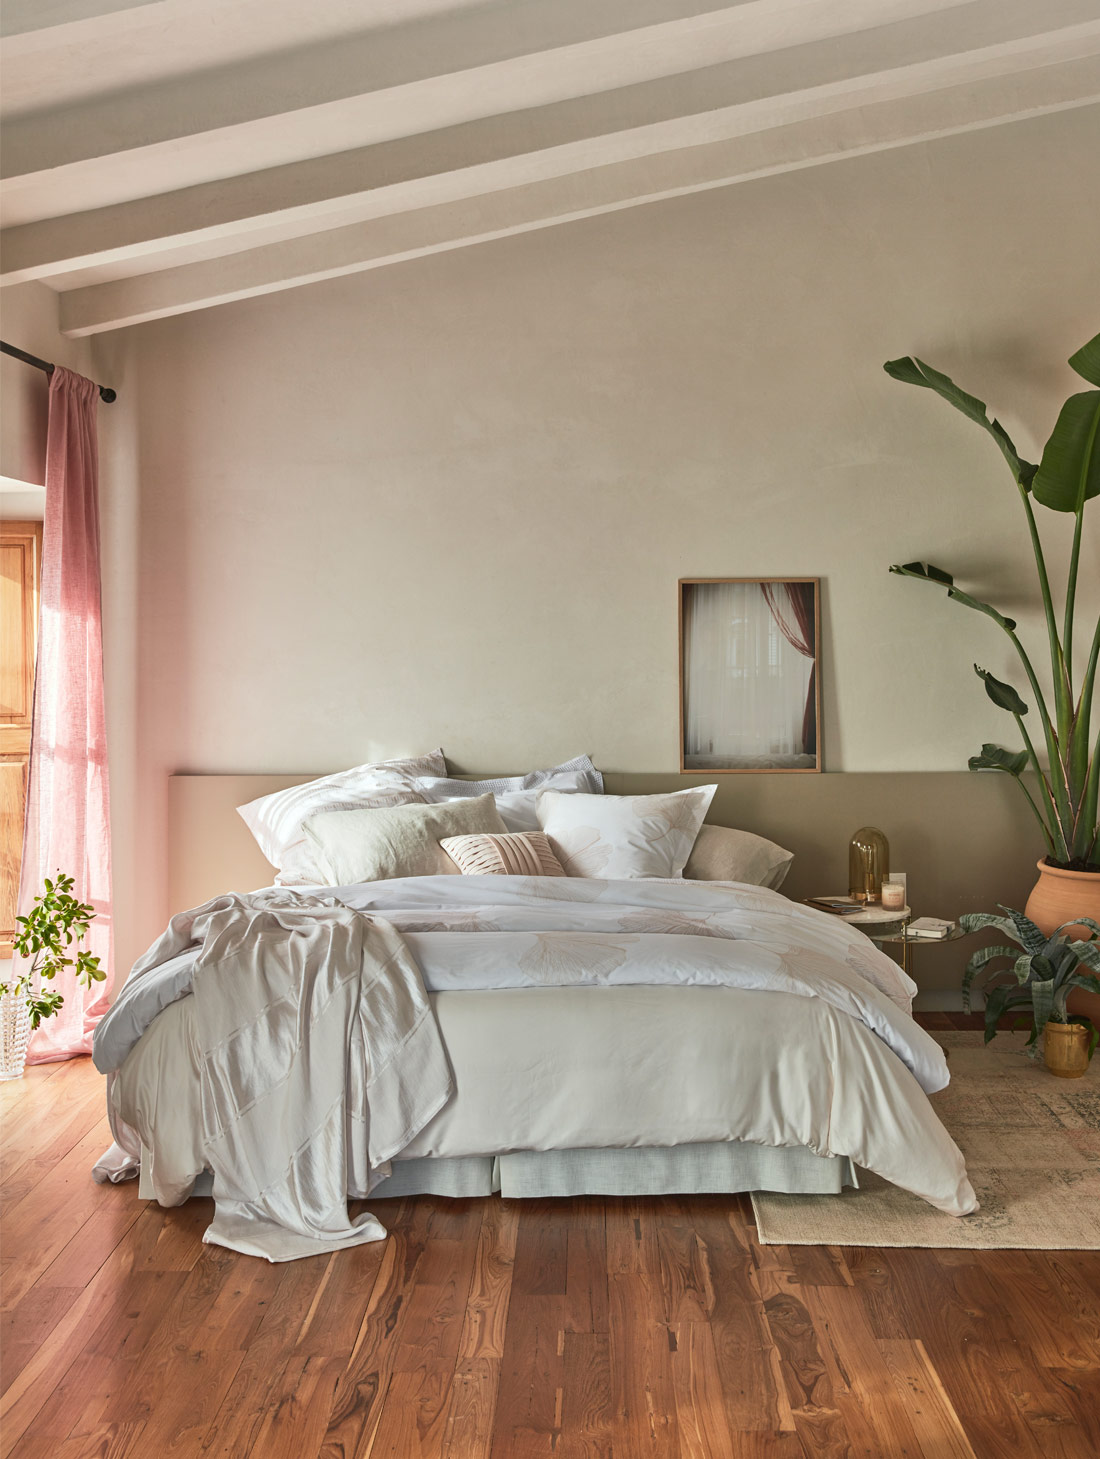 Zara Just Released Its Spring Home Decor Lineand Were Obsessed